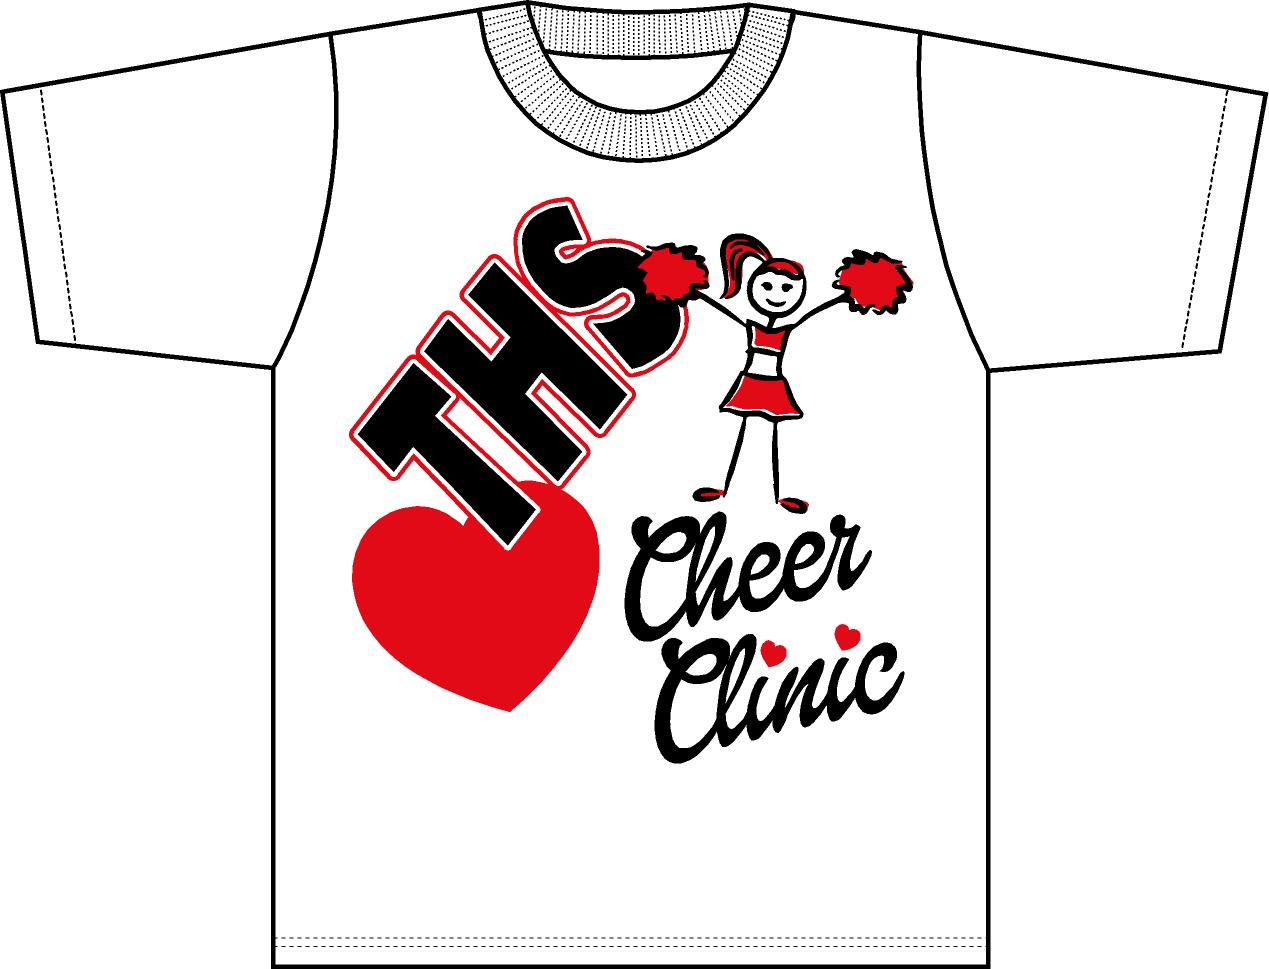 ths-cheer-clinic.jpg